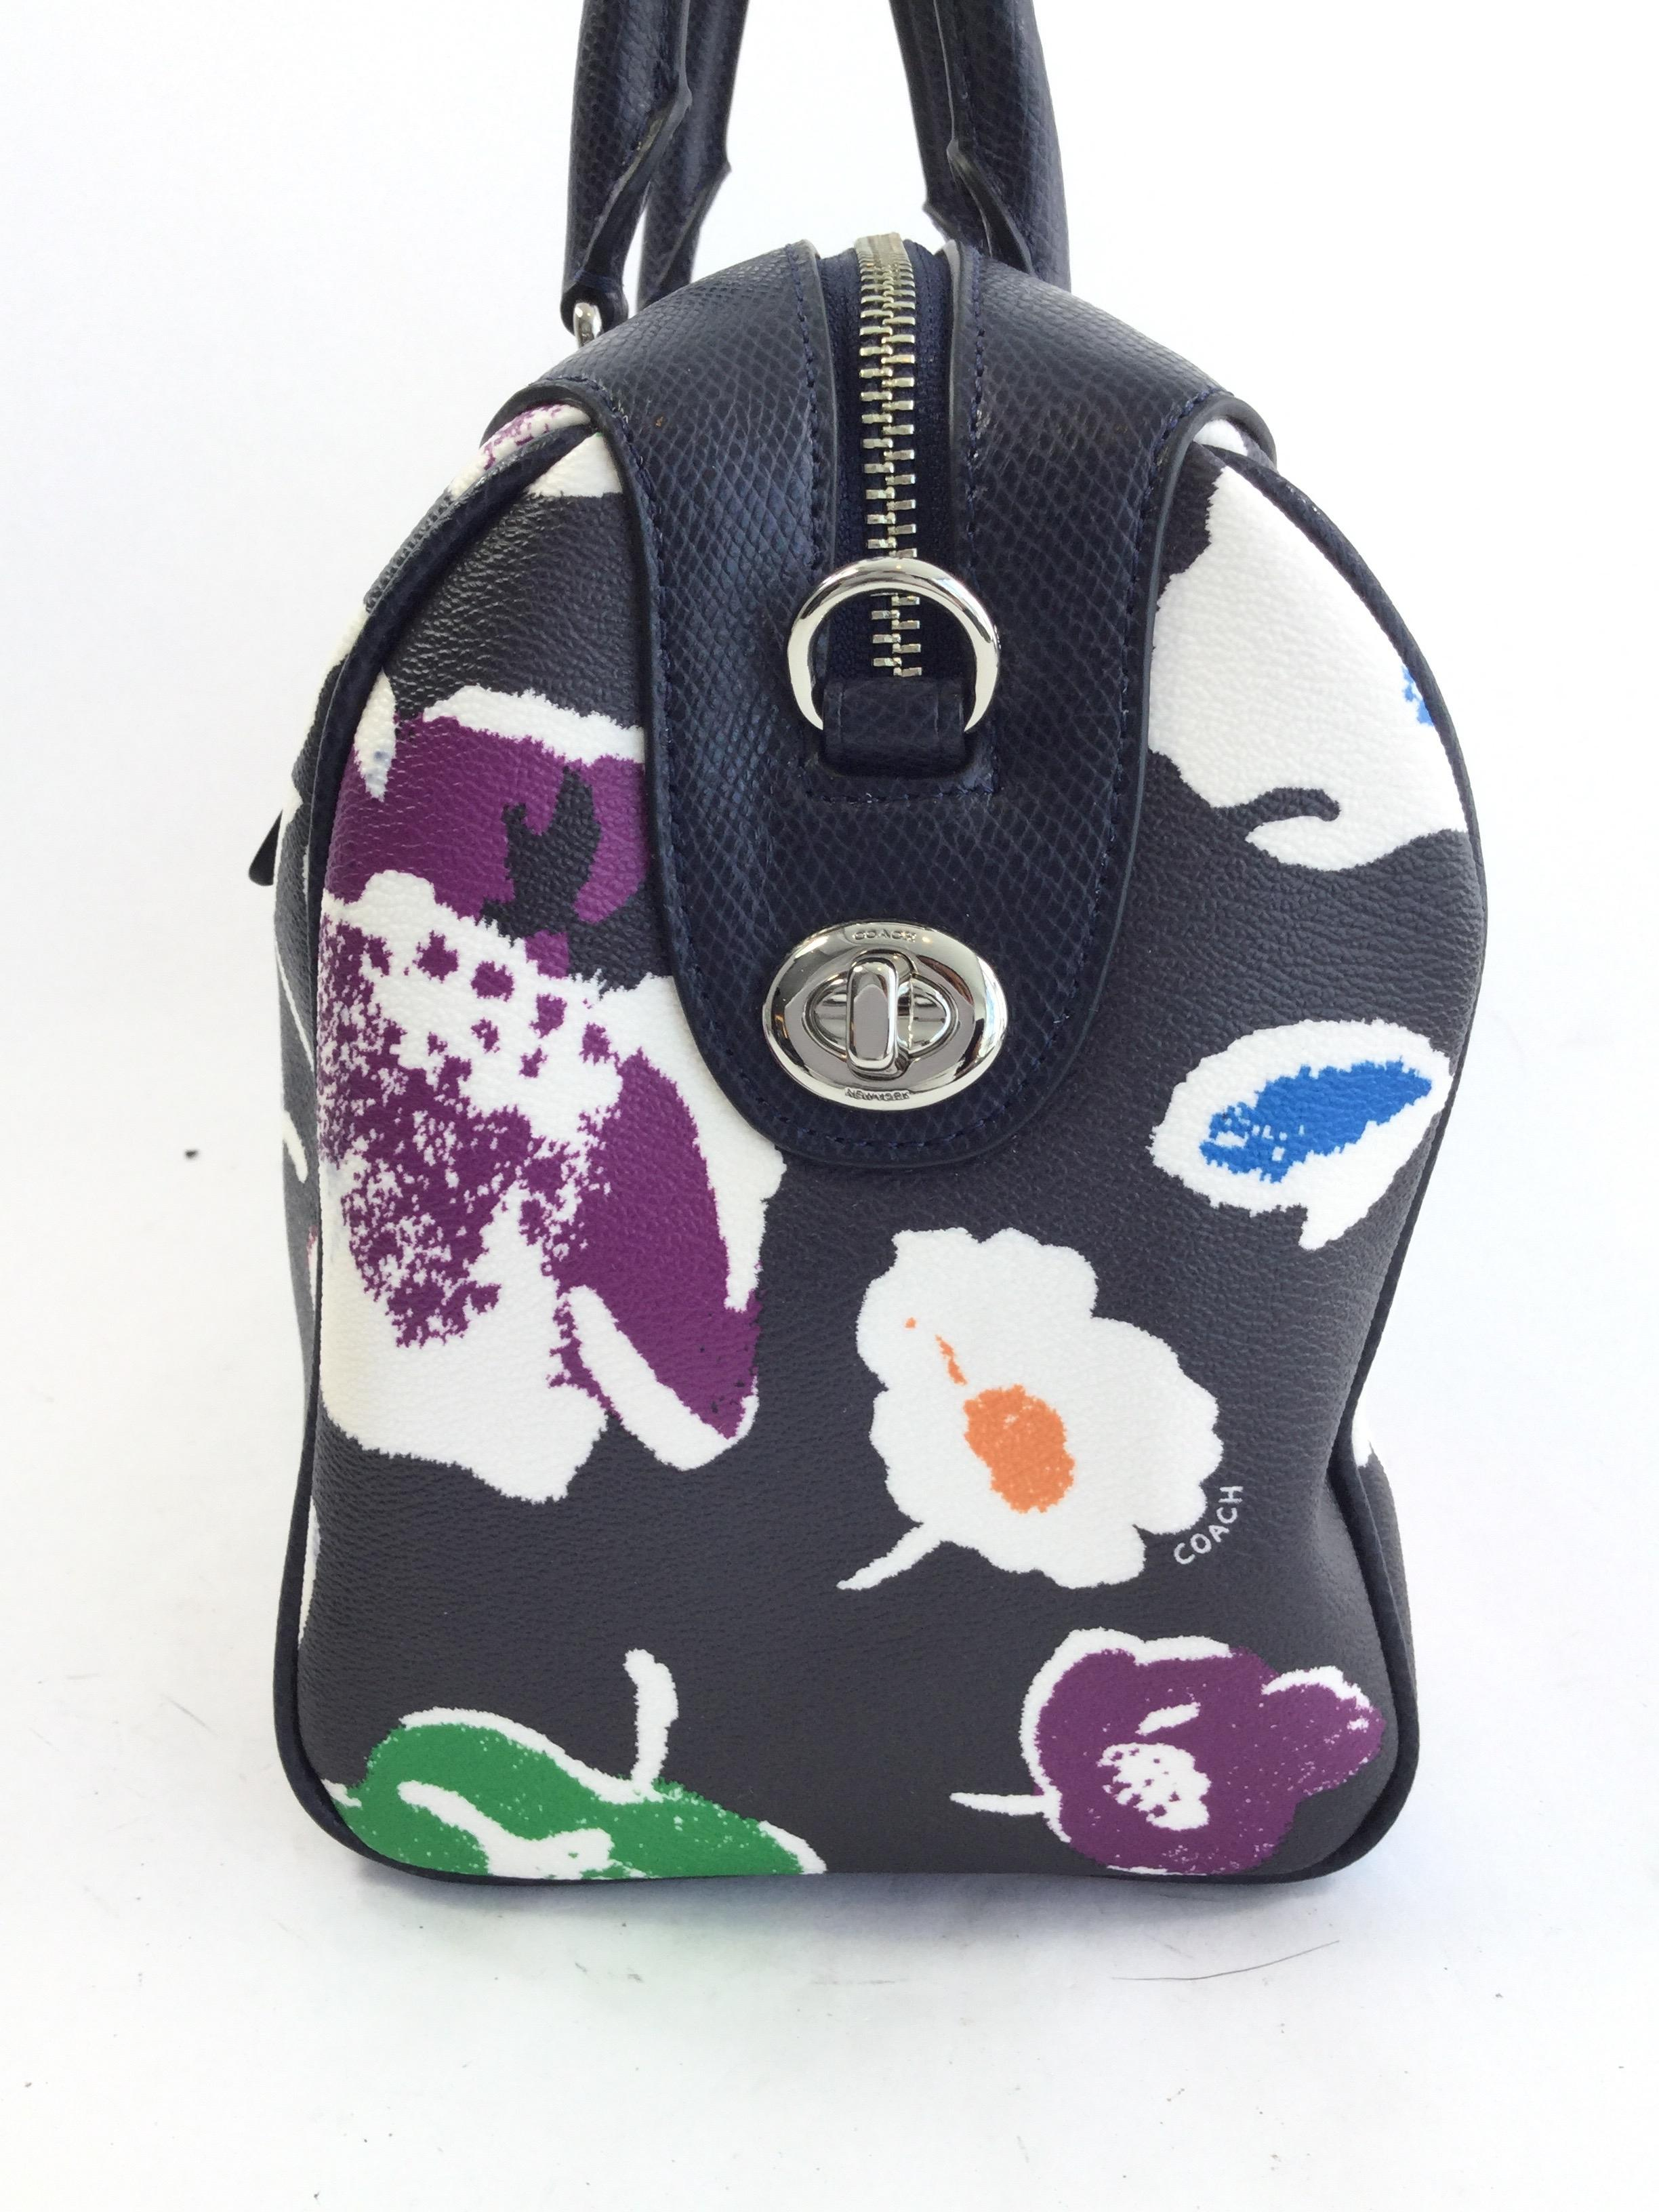 Coach Large Summer Floral Black/ Multicolor Cross Body Bag On Sale 67% Off | Cross Body Bags On ...